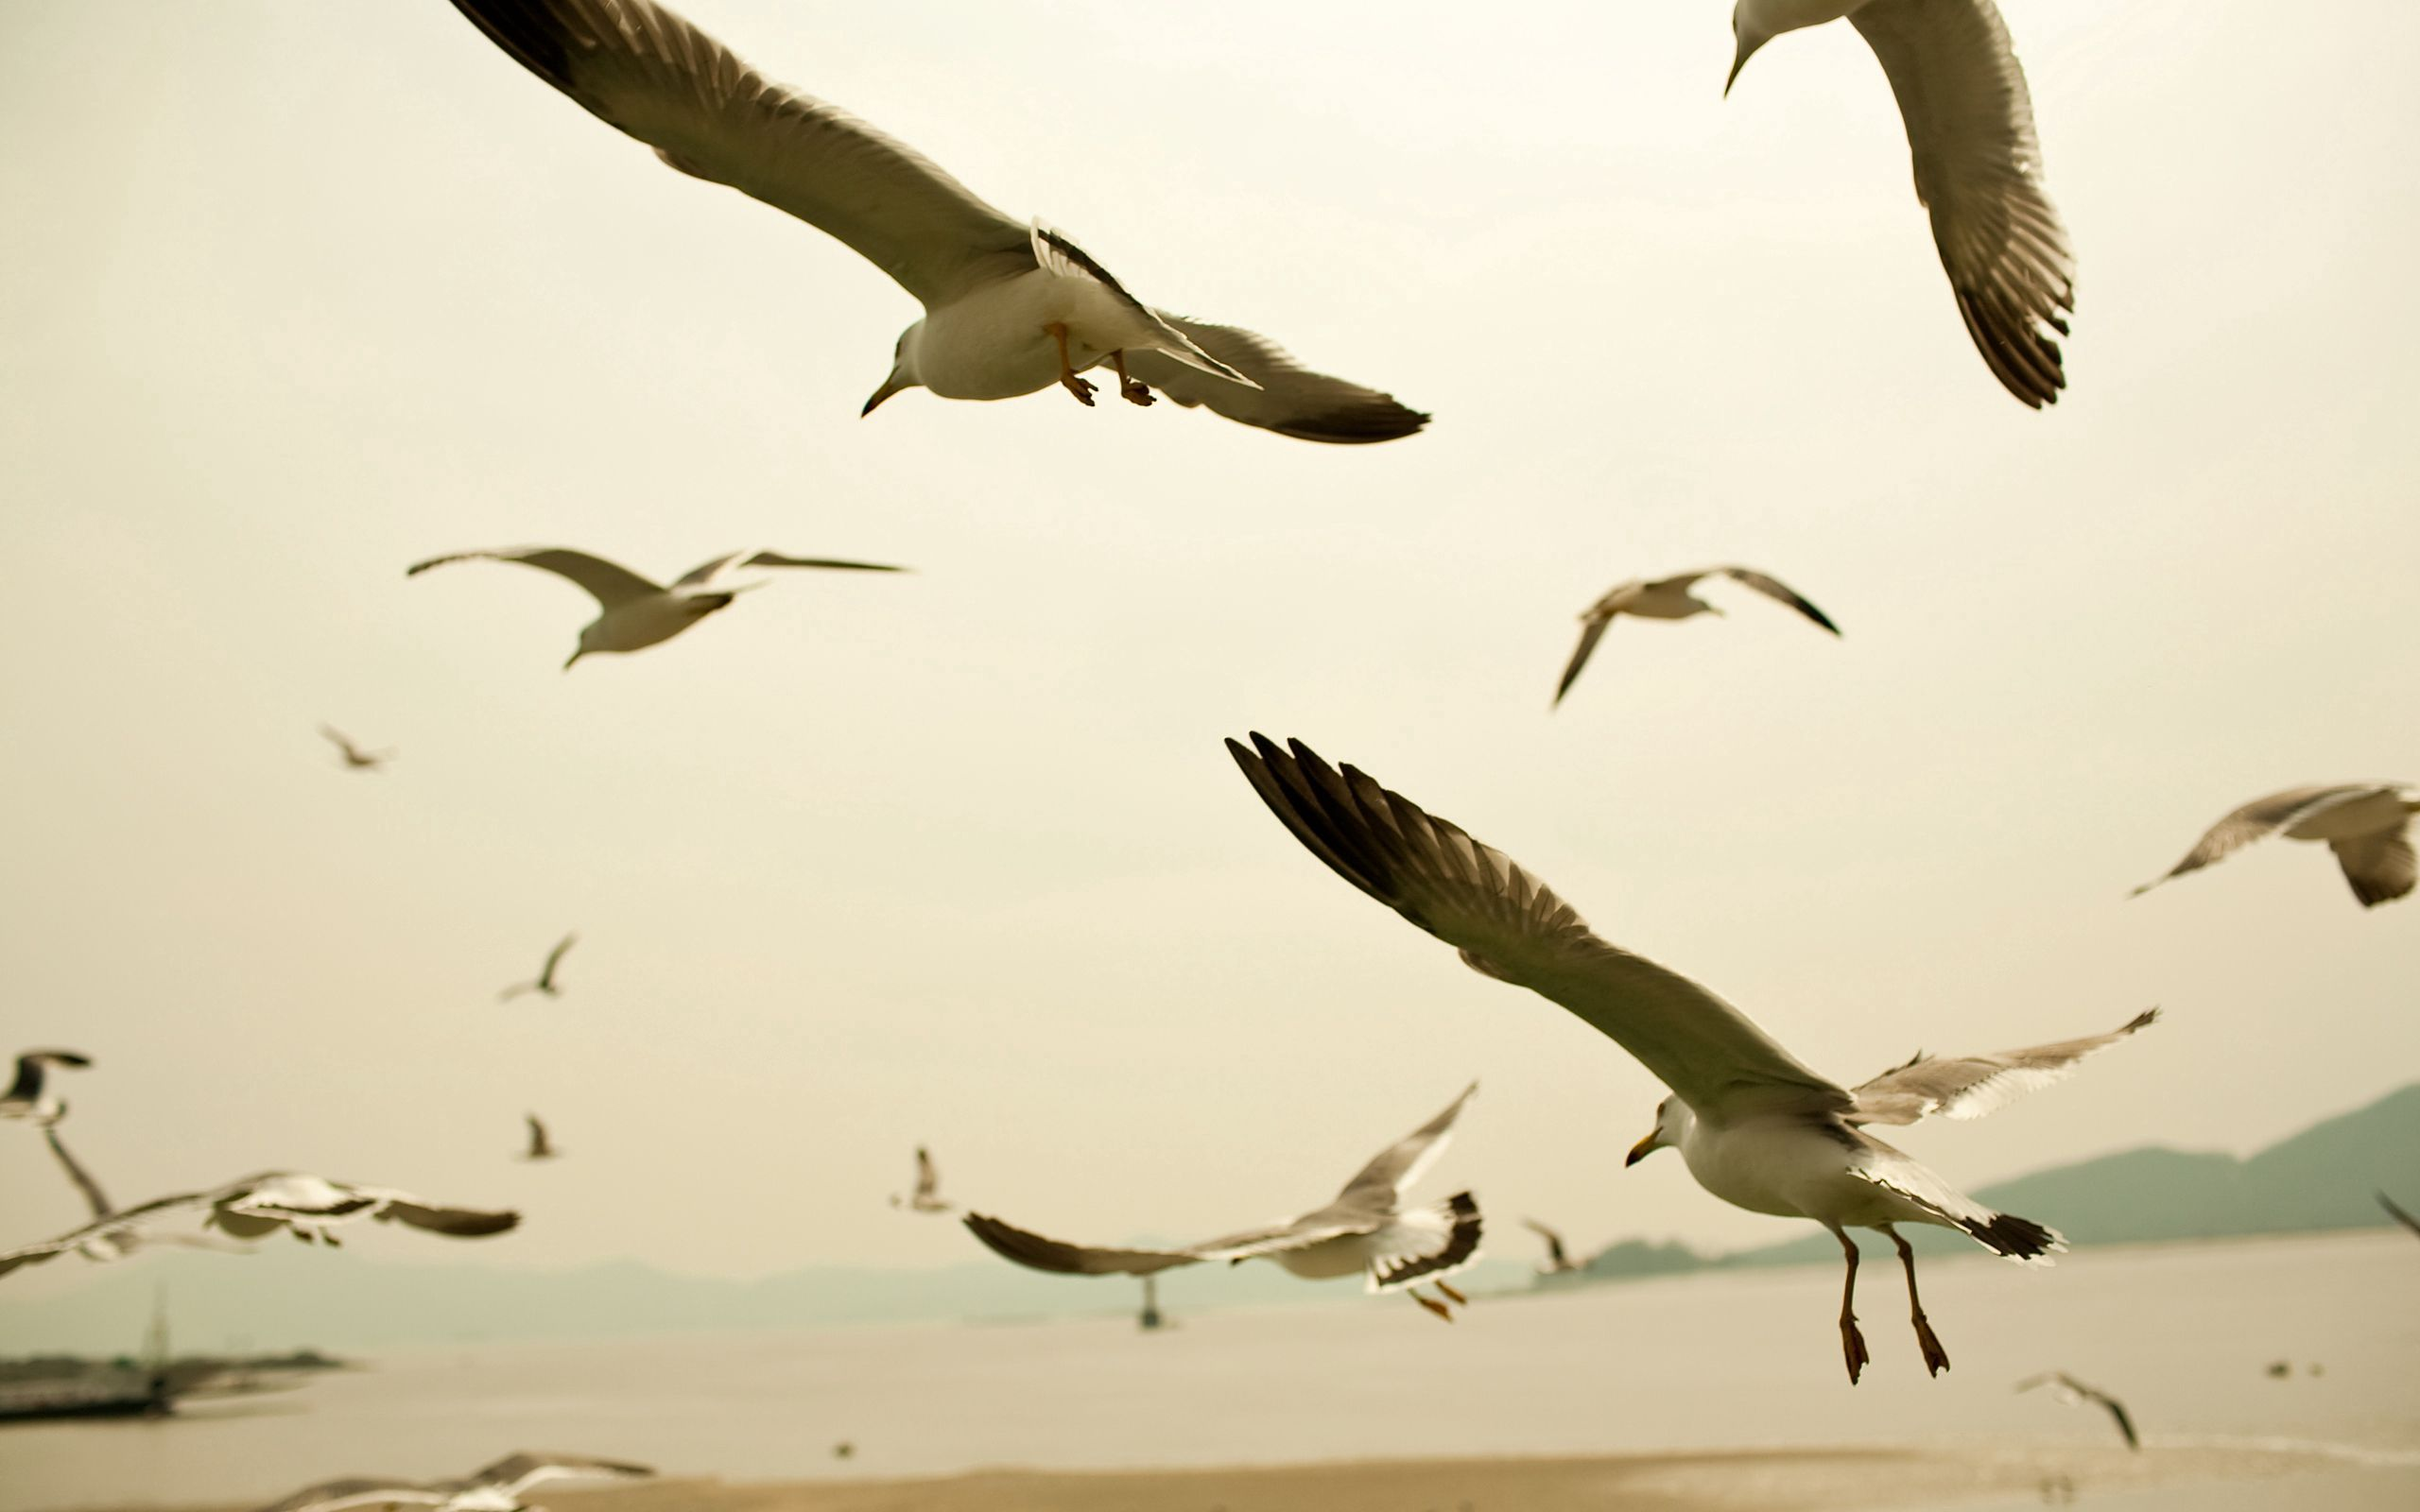 153959 download wallpaper Animals, Sky, Sweep, Wave, Birds, Seagulls screensavers and pictures for free